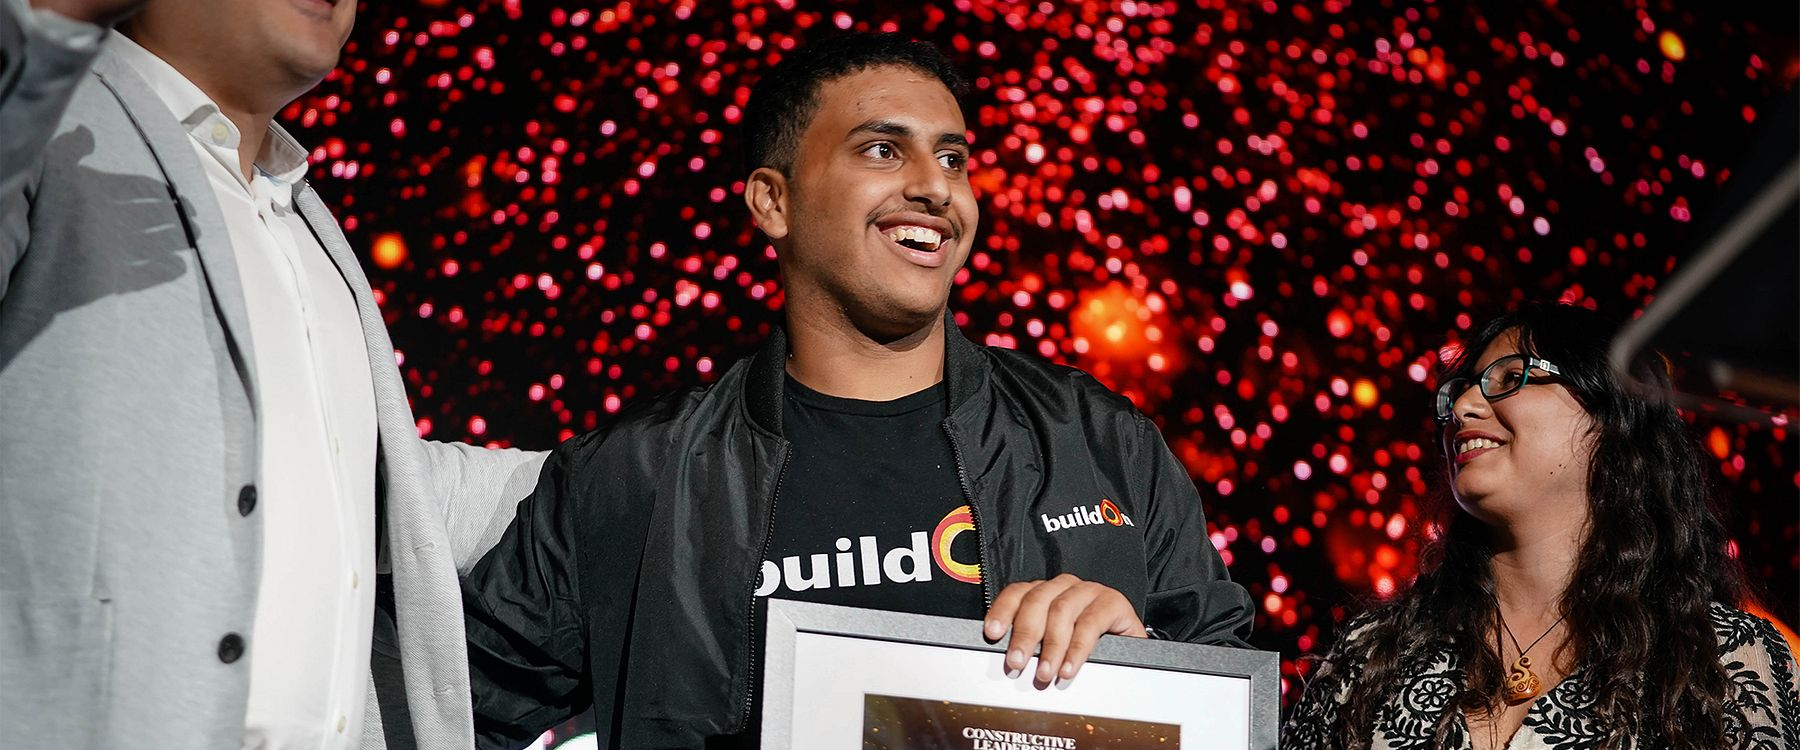 A buildOn student from Oakland stands on the stage, smiling after winning the Constructive Leadership Award.